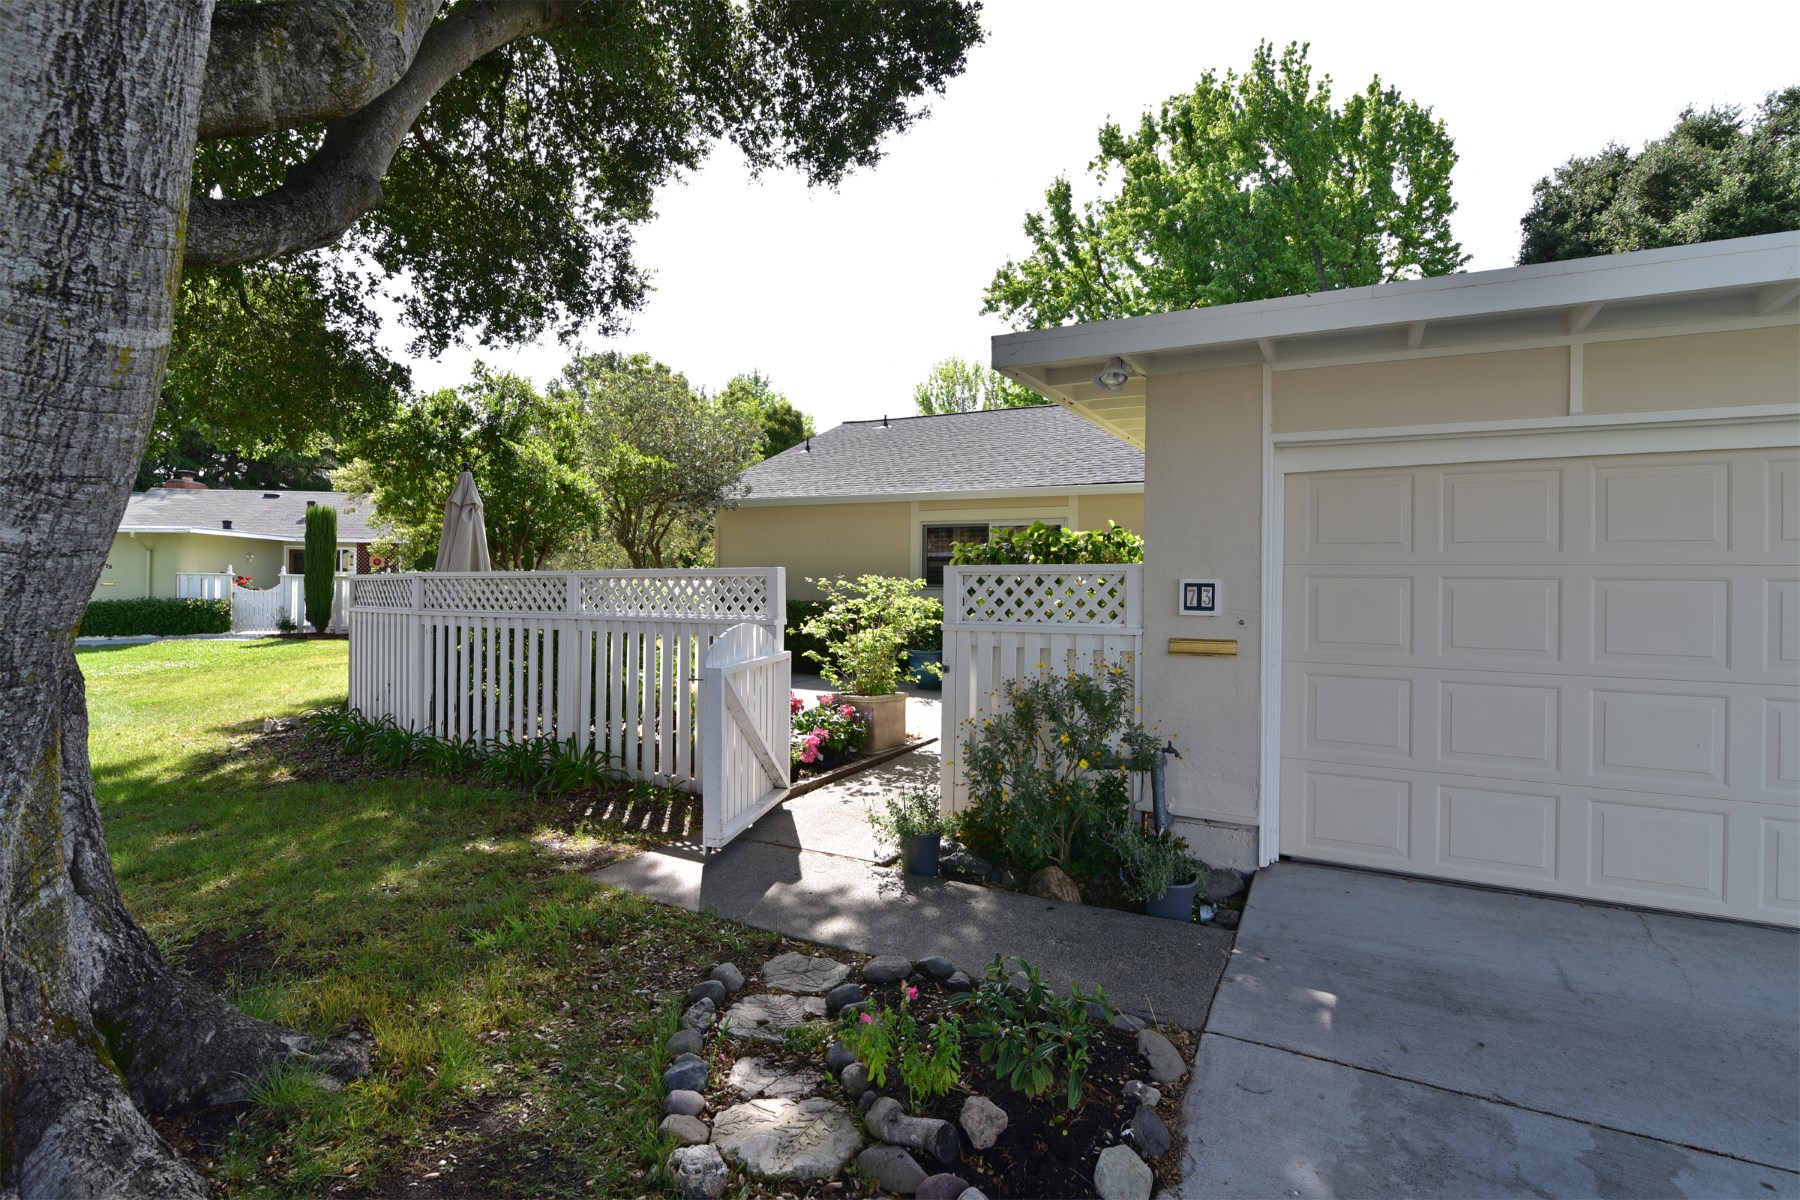 Single Family Home for Sale at 73 Temelec Circle Sonoma, California, 95476 United States